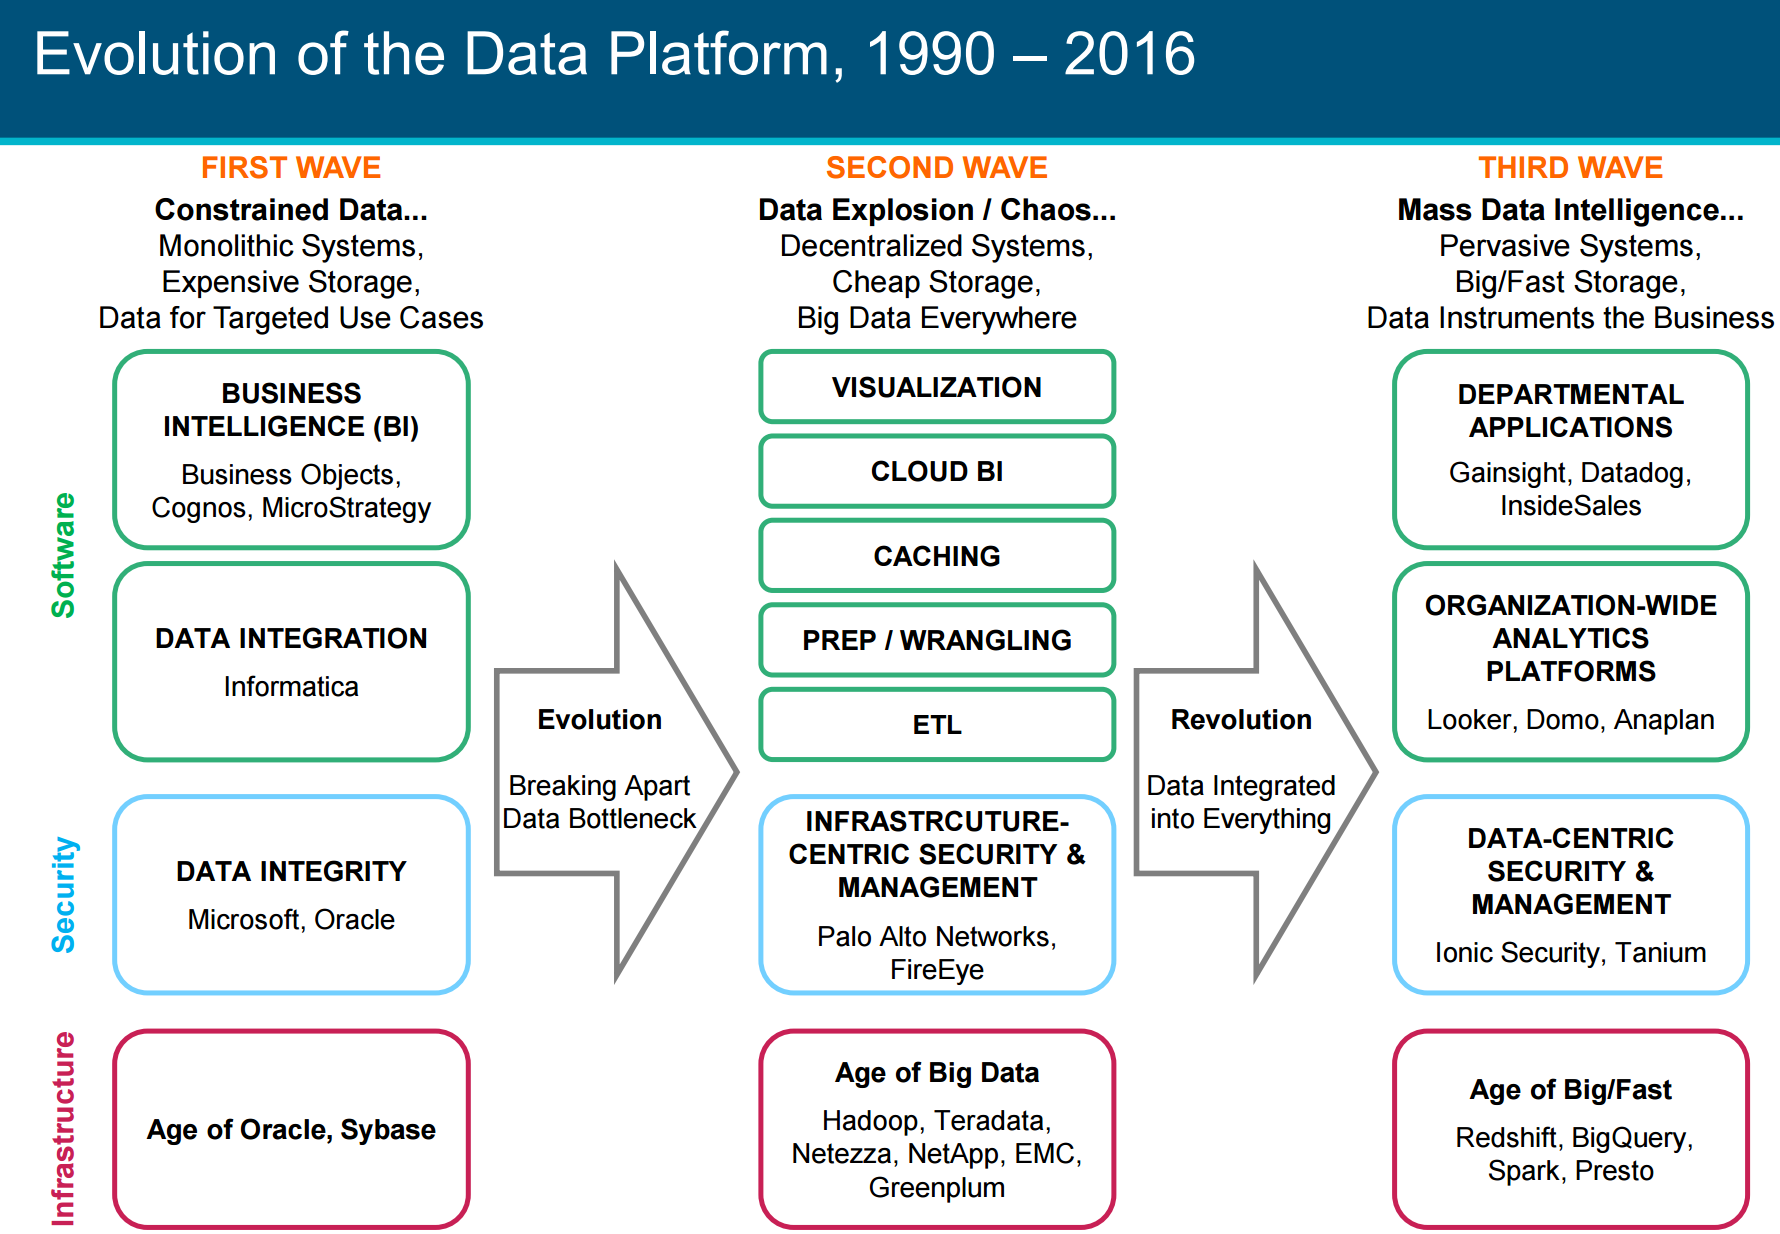 Evolution of Data Platform